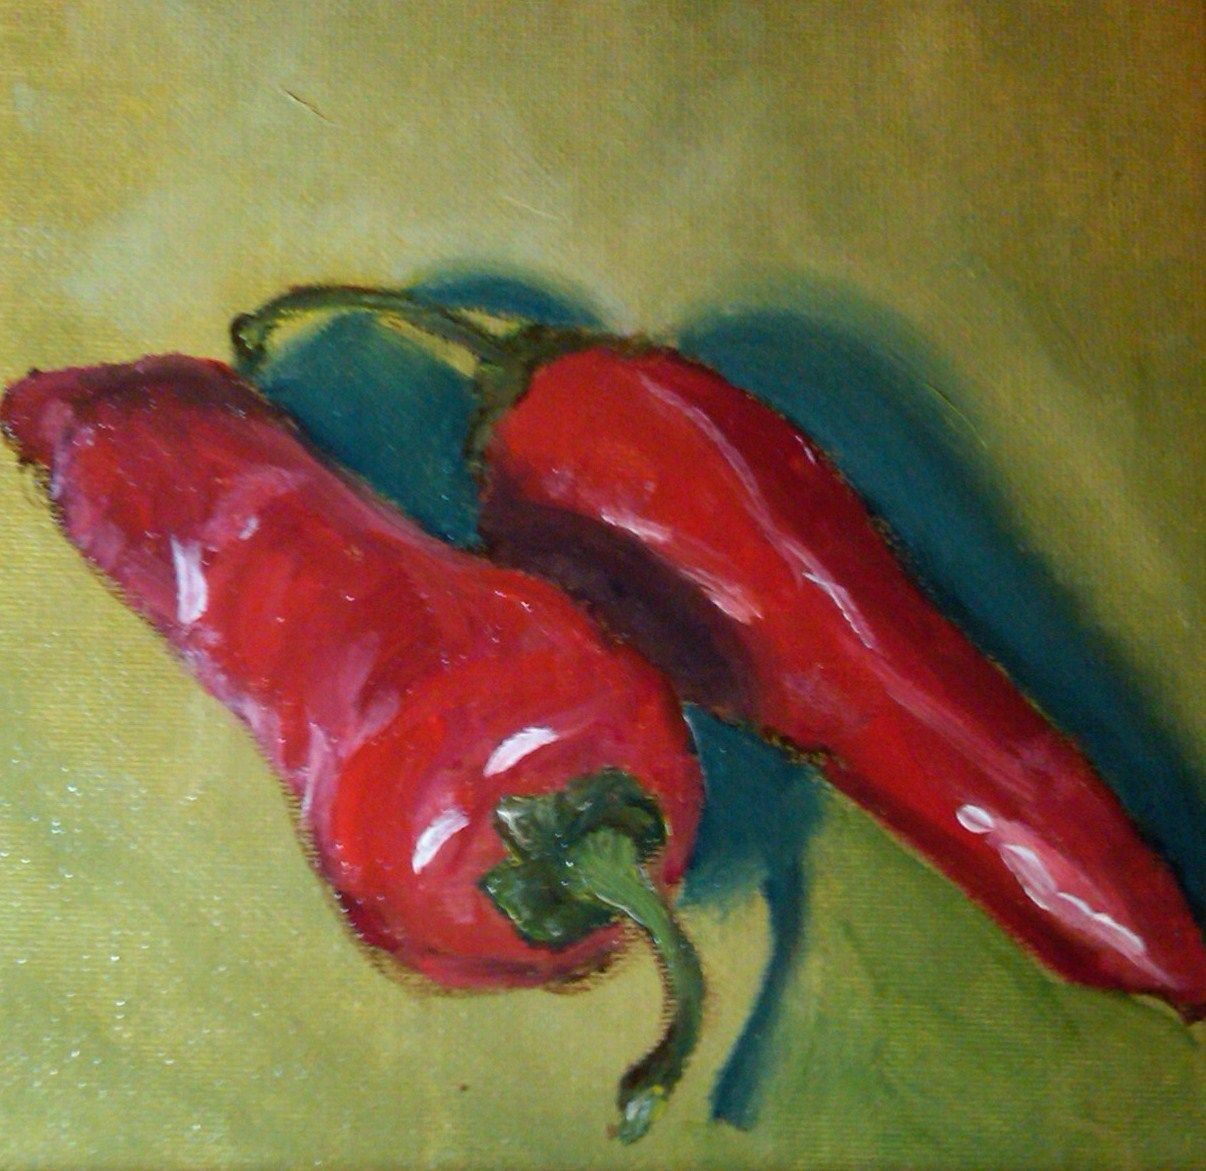 Paintings Of Chili Peppers Google Search Stuffed Peppers Red Hot Chili Peppers Vegetable Painting